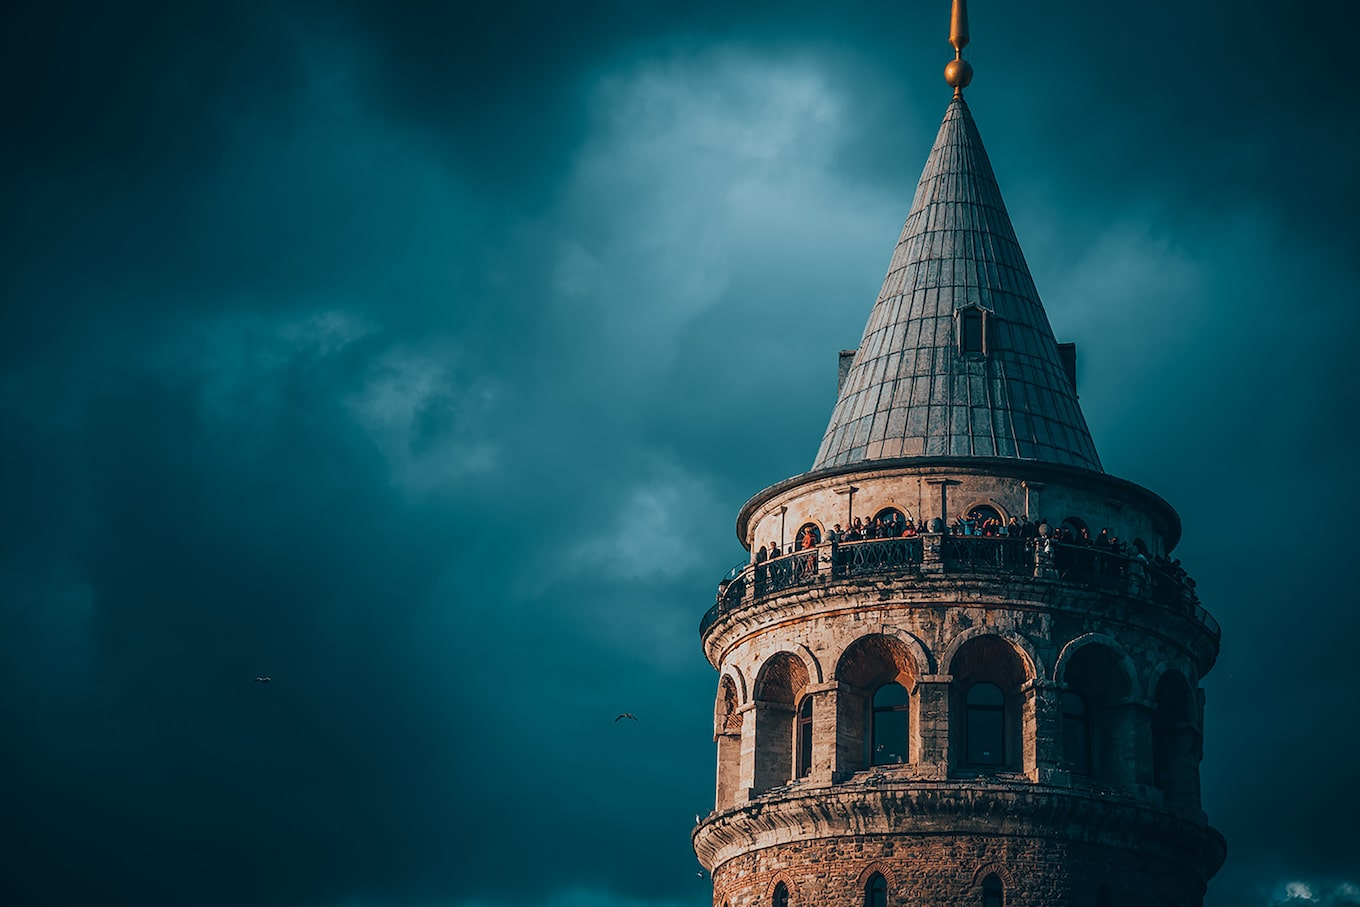 ilkin-karacan-sony-alpha-7RII-cathedral-spire-against-dark-moody-sky